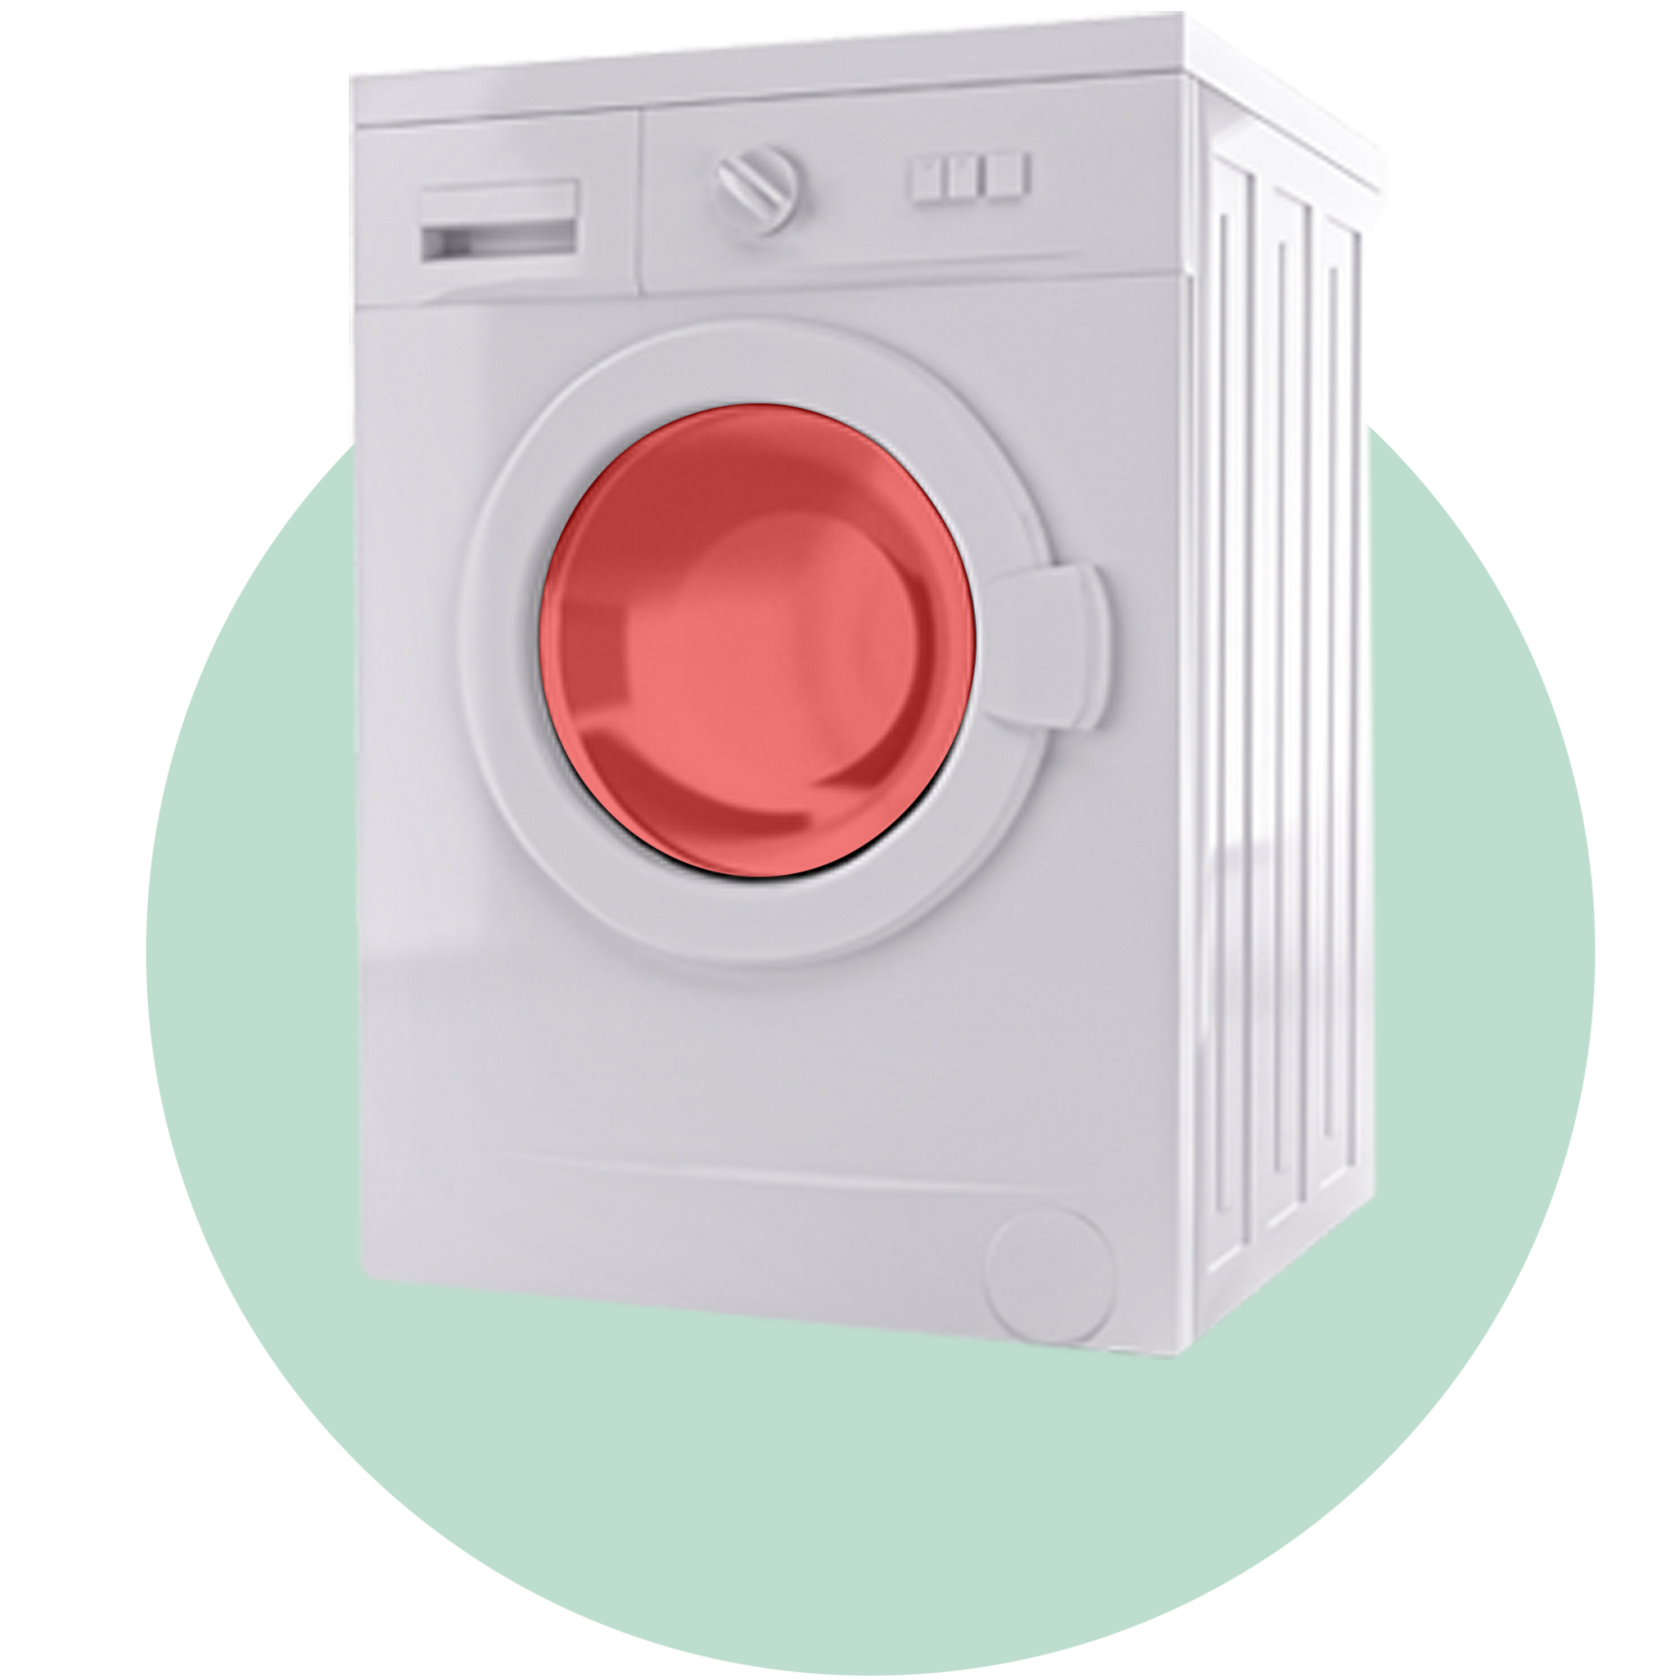 dosagehelper washingmachine